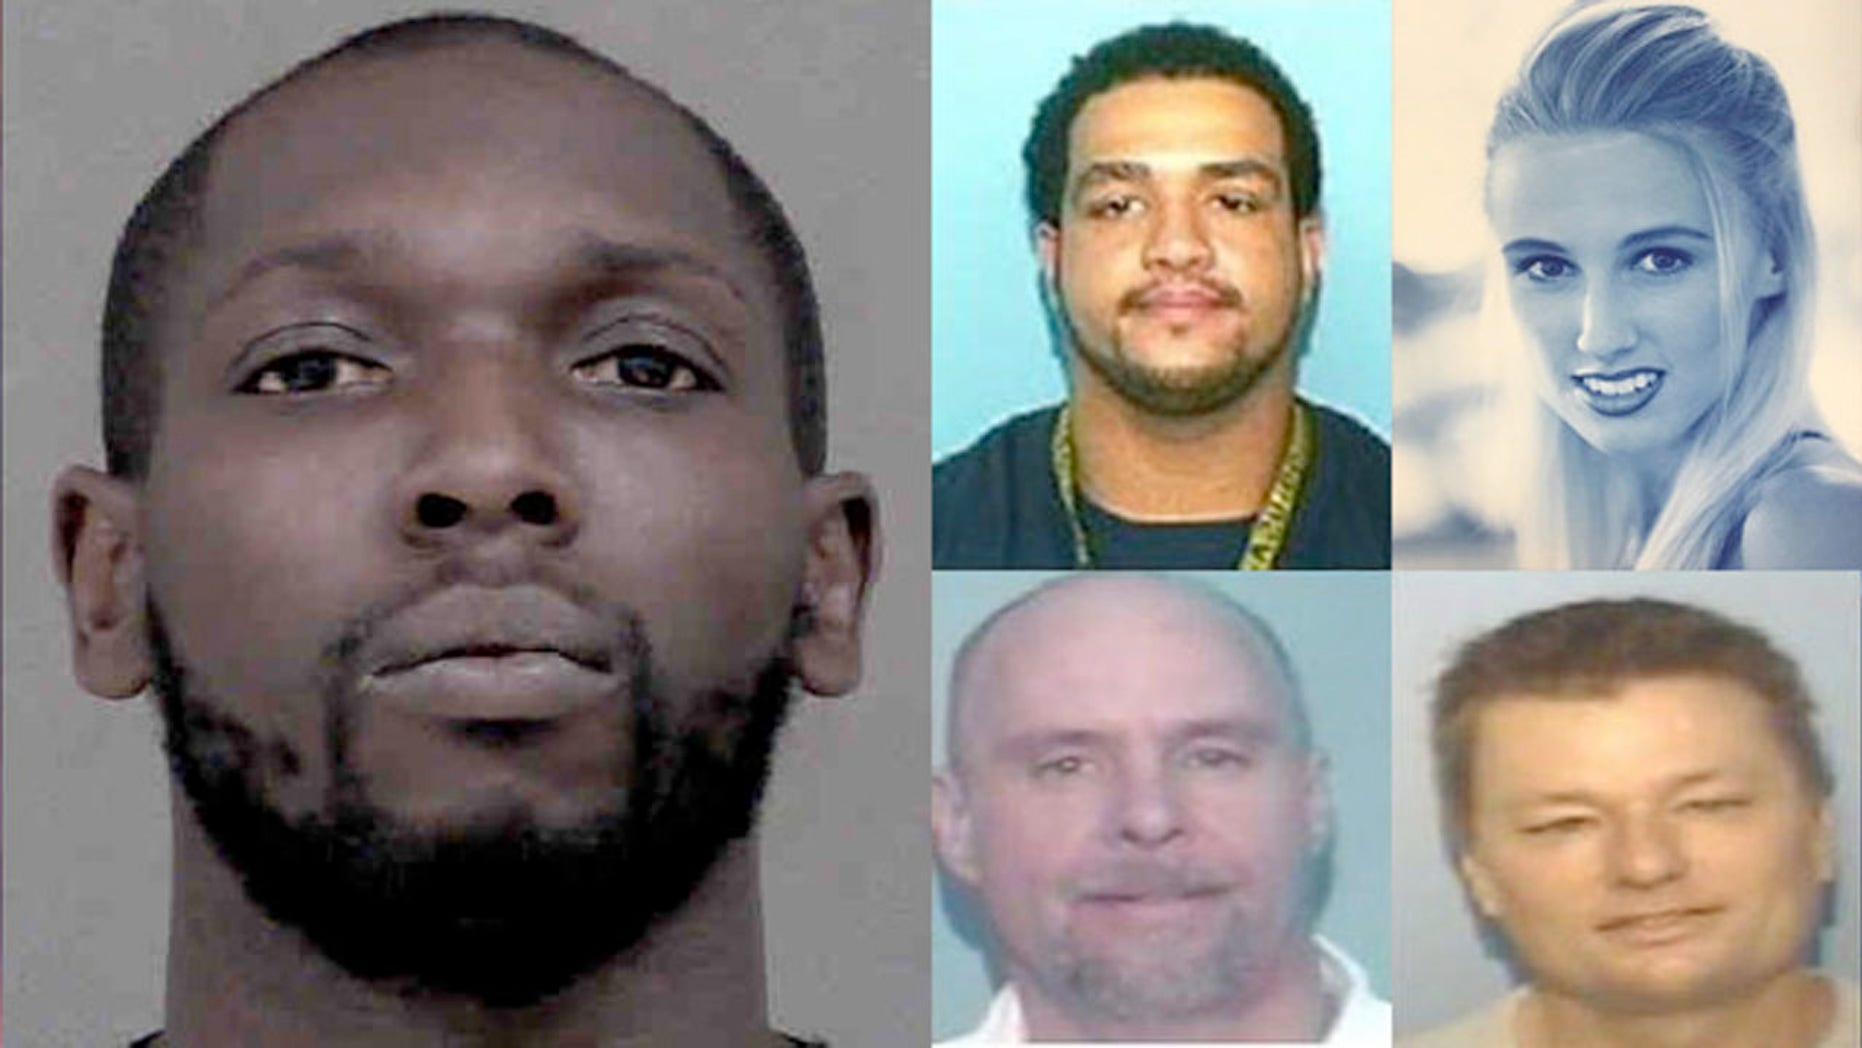 Dominick O'Neill Daise, 32, was arrested in connection with the killings of Timothy Stone (top left,) Cherilyn Crawford (top right), William Royster, and Andrew Babyak.